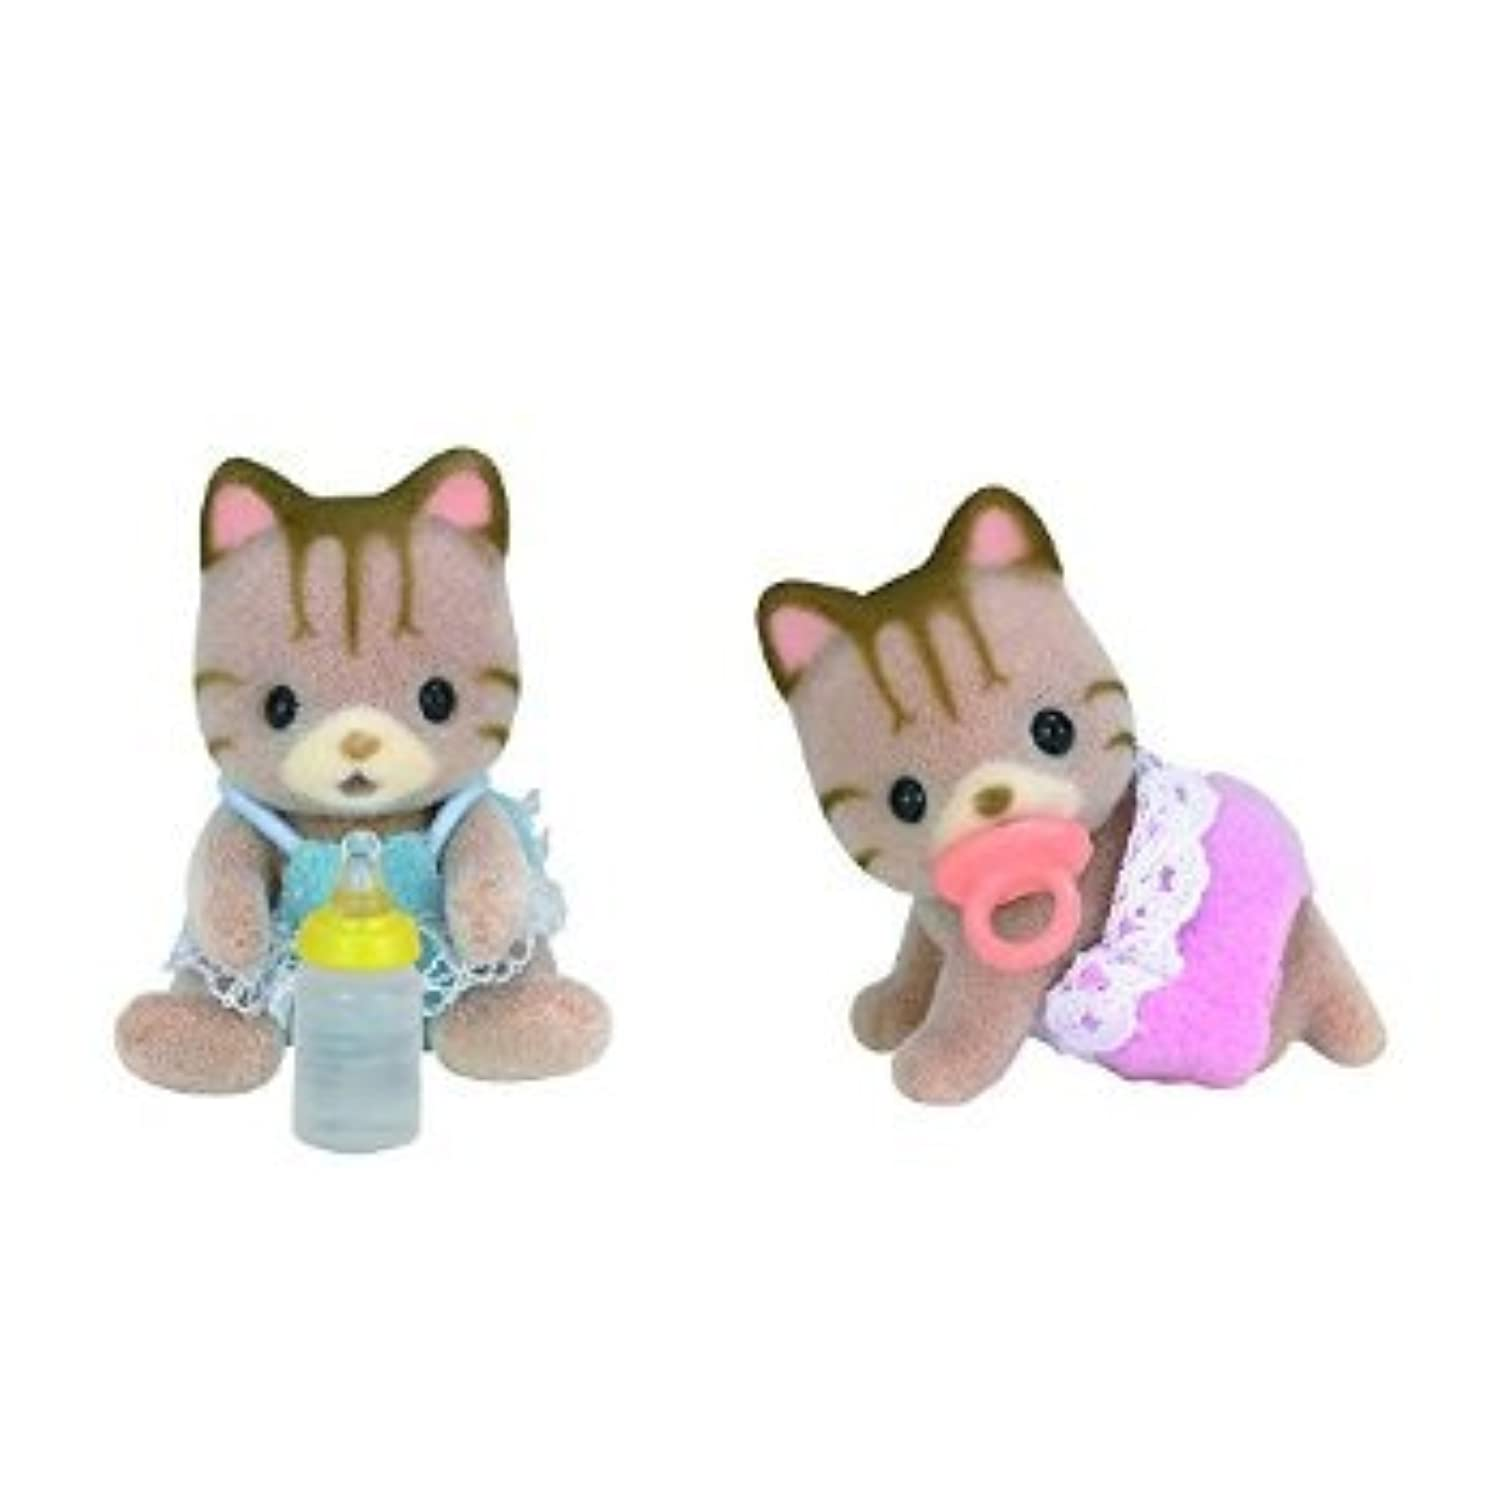 Calico Critters Sandy Cat Twins Doll おもちゃ [並行輸入品]